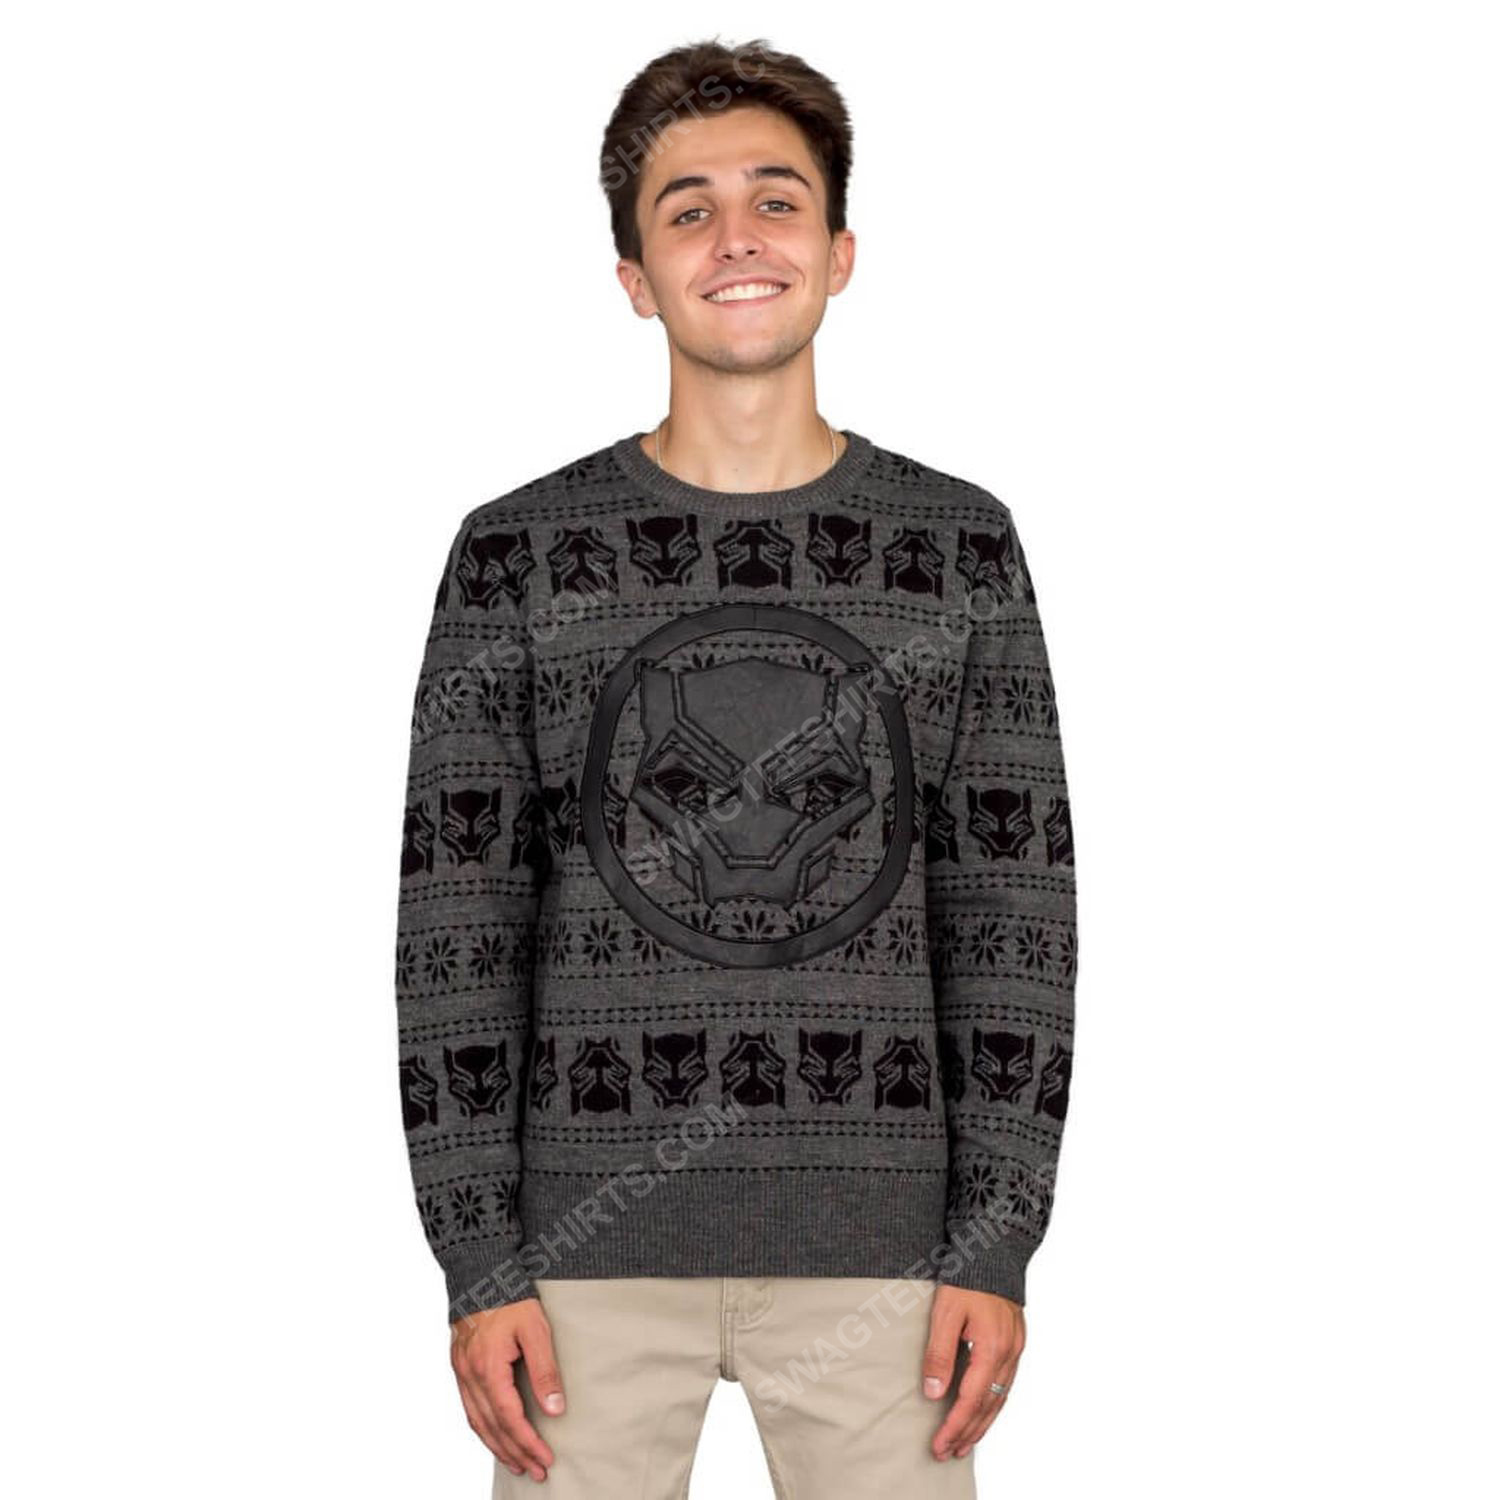 Marvel comics black panther full print ugly christmas sweater 4